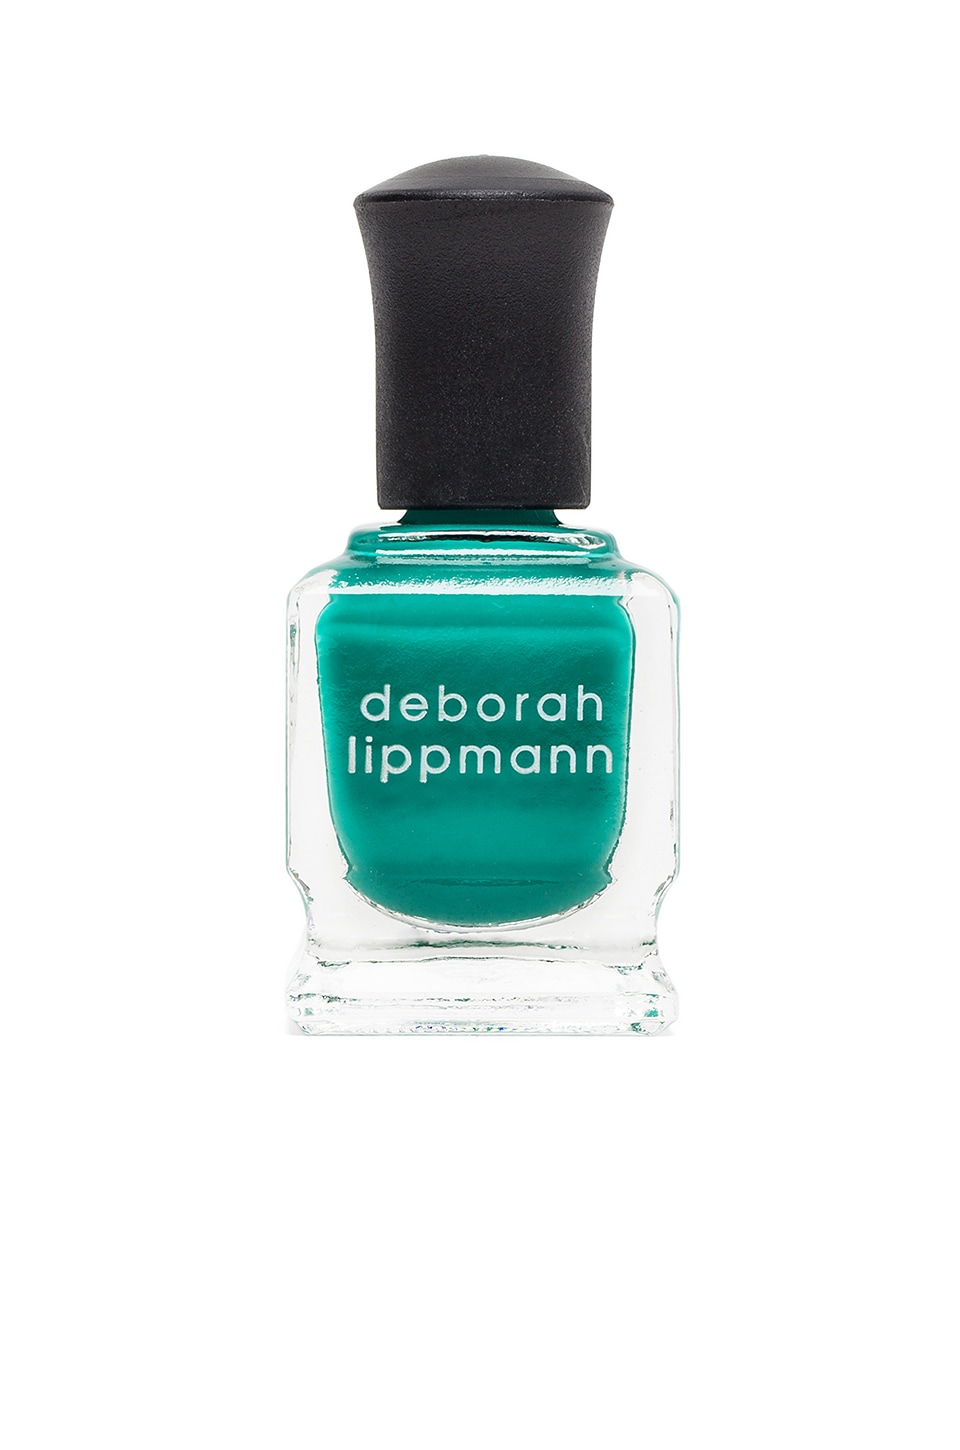 Deborah Lippmann Nail Lacquer in She Drives me Crazy